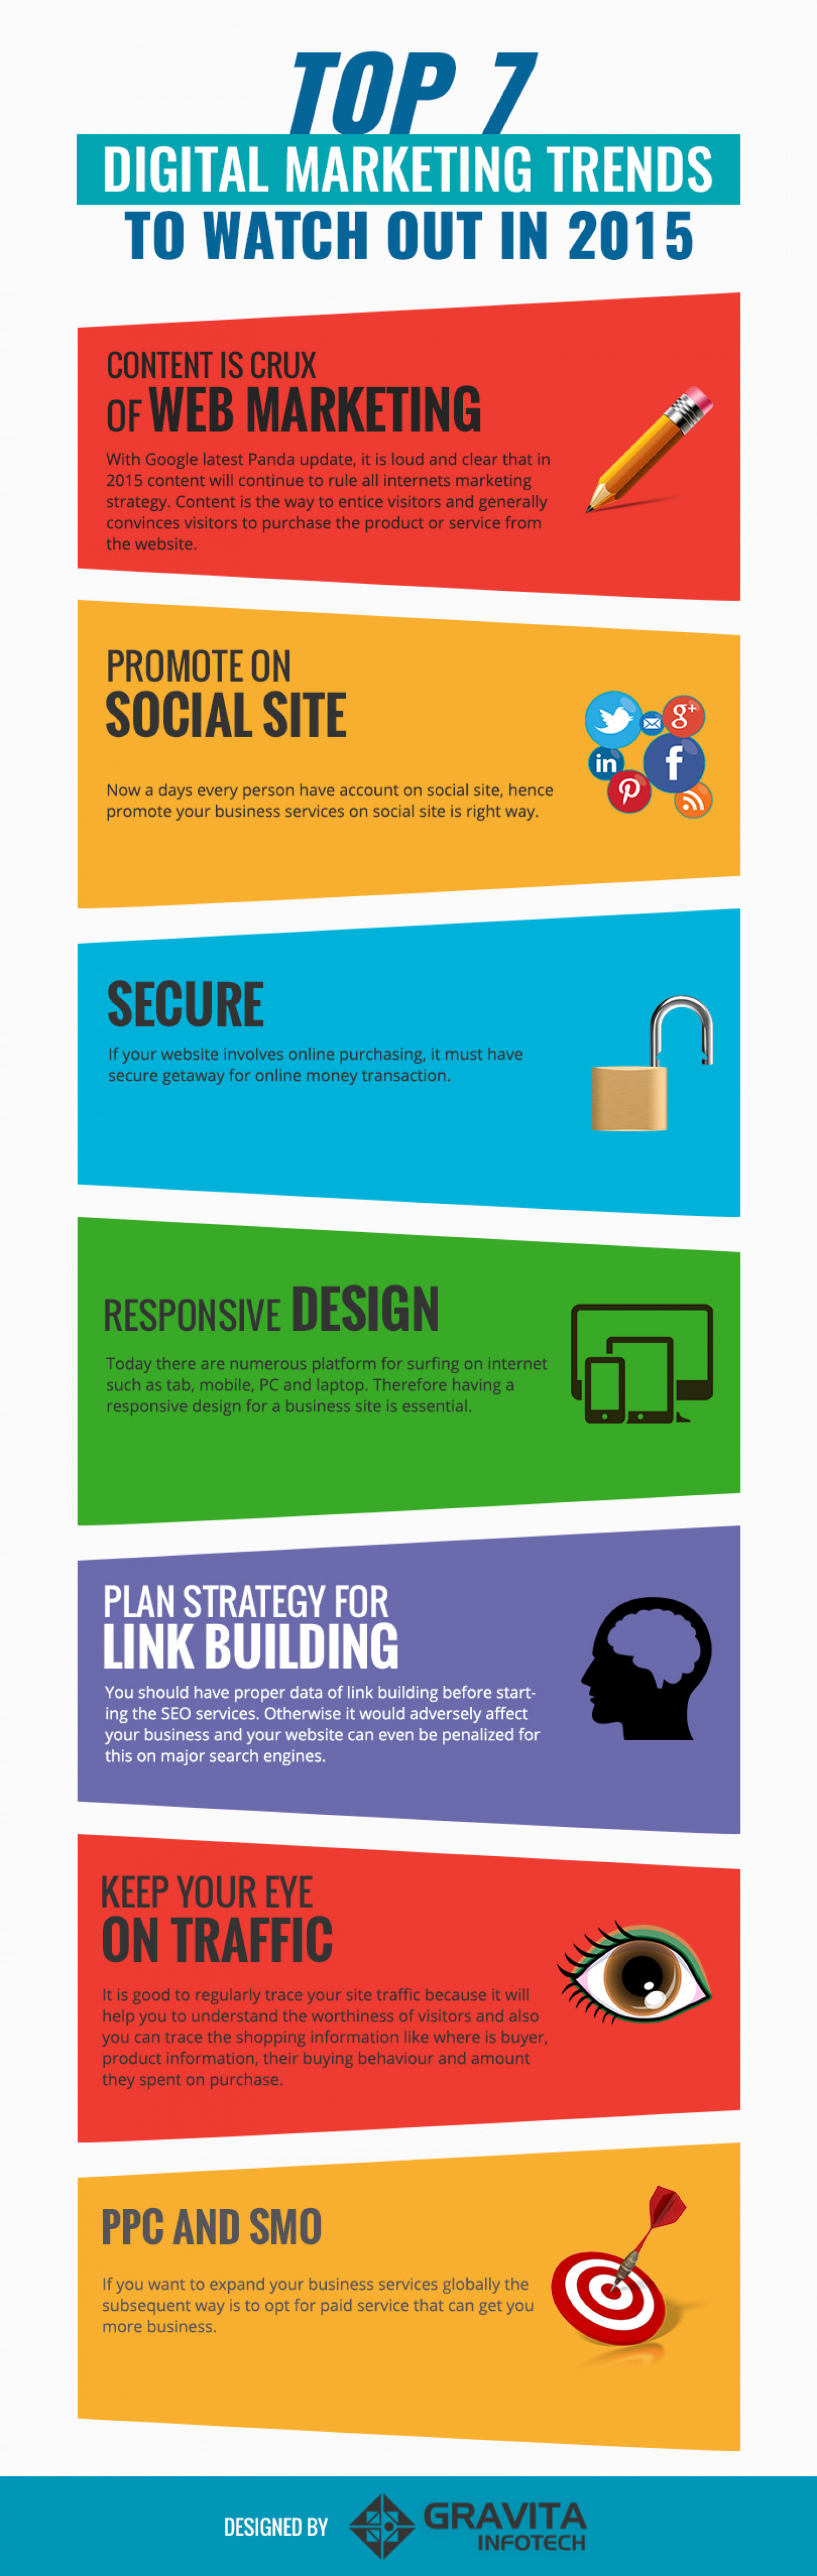 TOP 7 Digital Marketing Trend to Watch out This 2015 Infographic